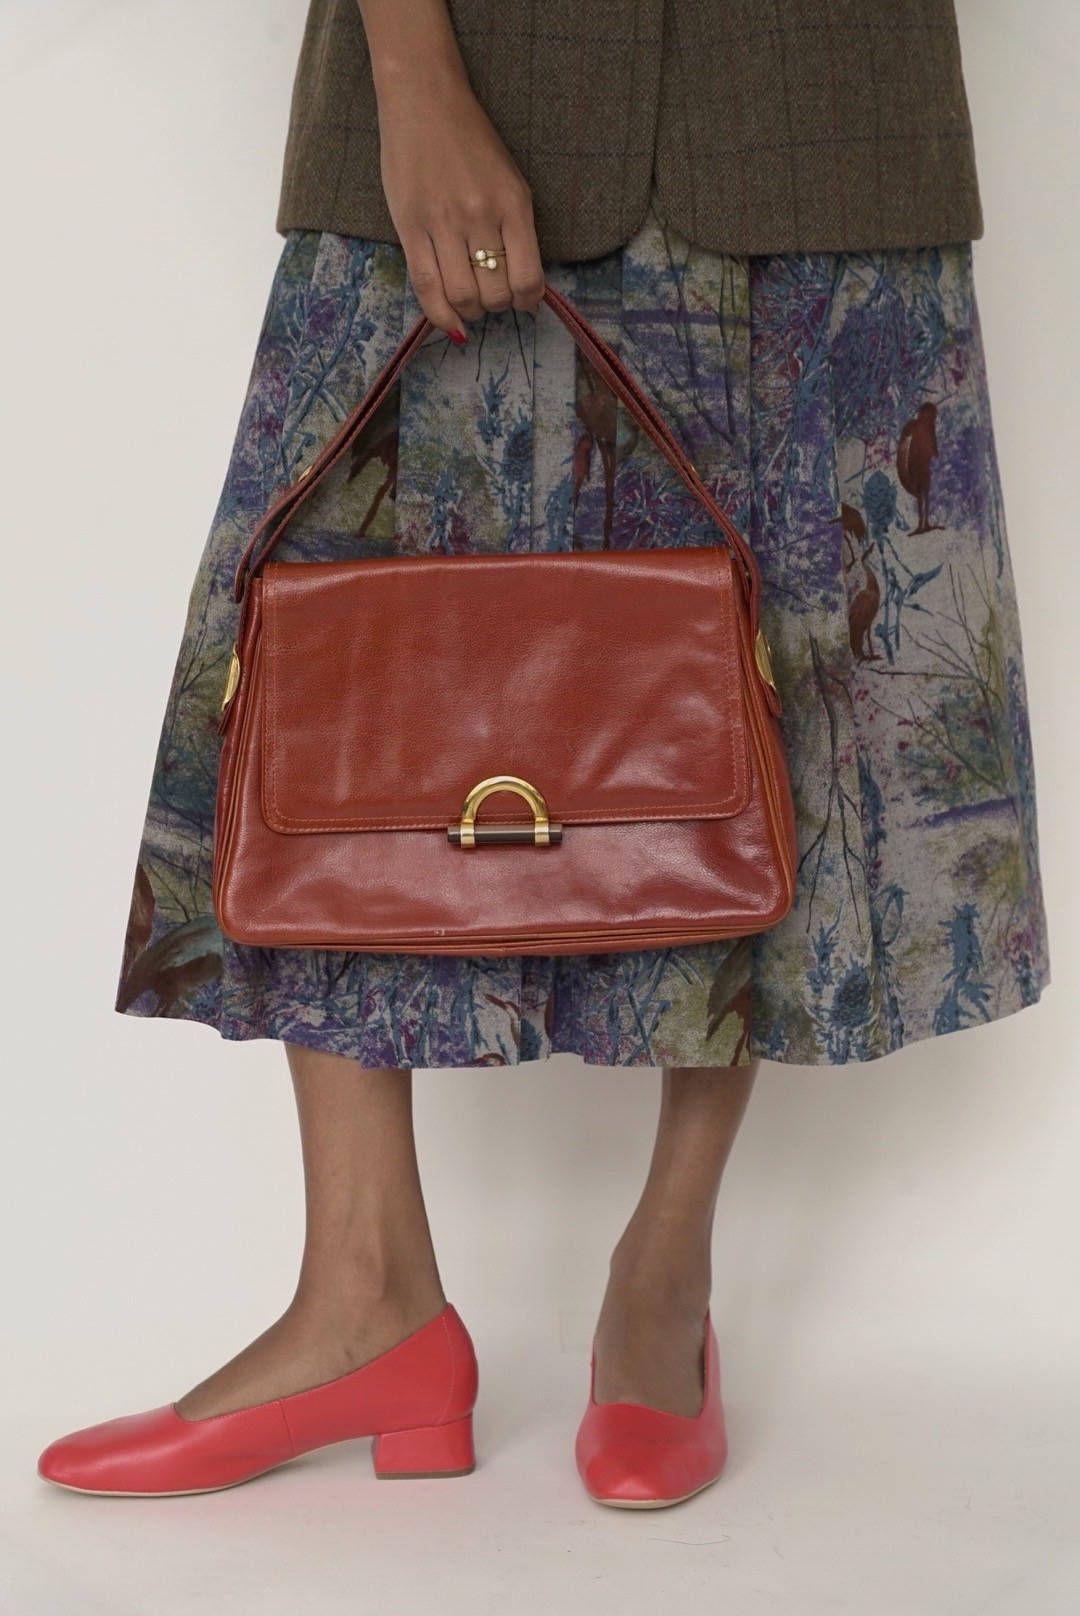 70 S Mantessa Bag Italian Leather Bags Everyday Handbag Brown Made In Italy Vintage Purse By Mnimalmood On